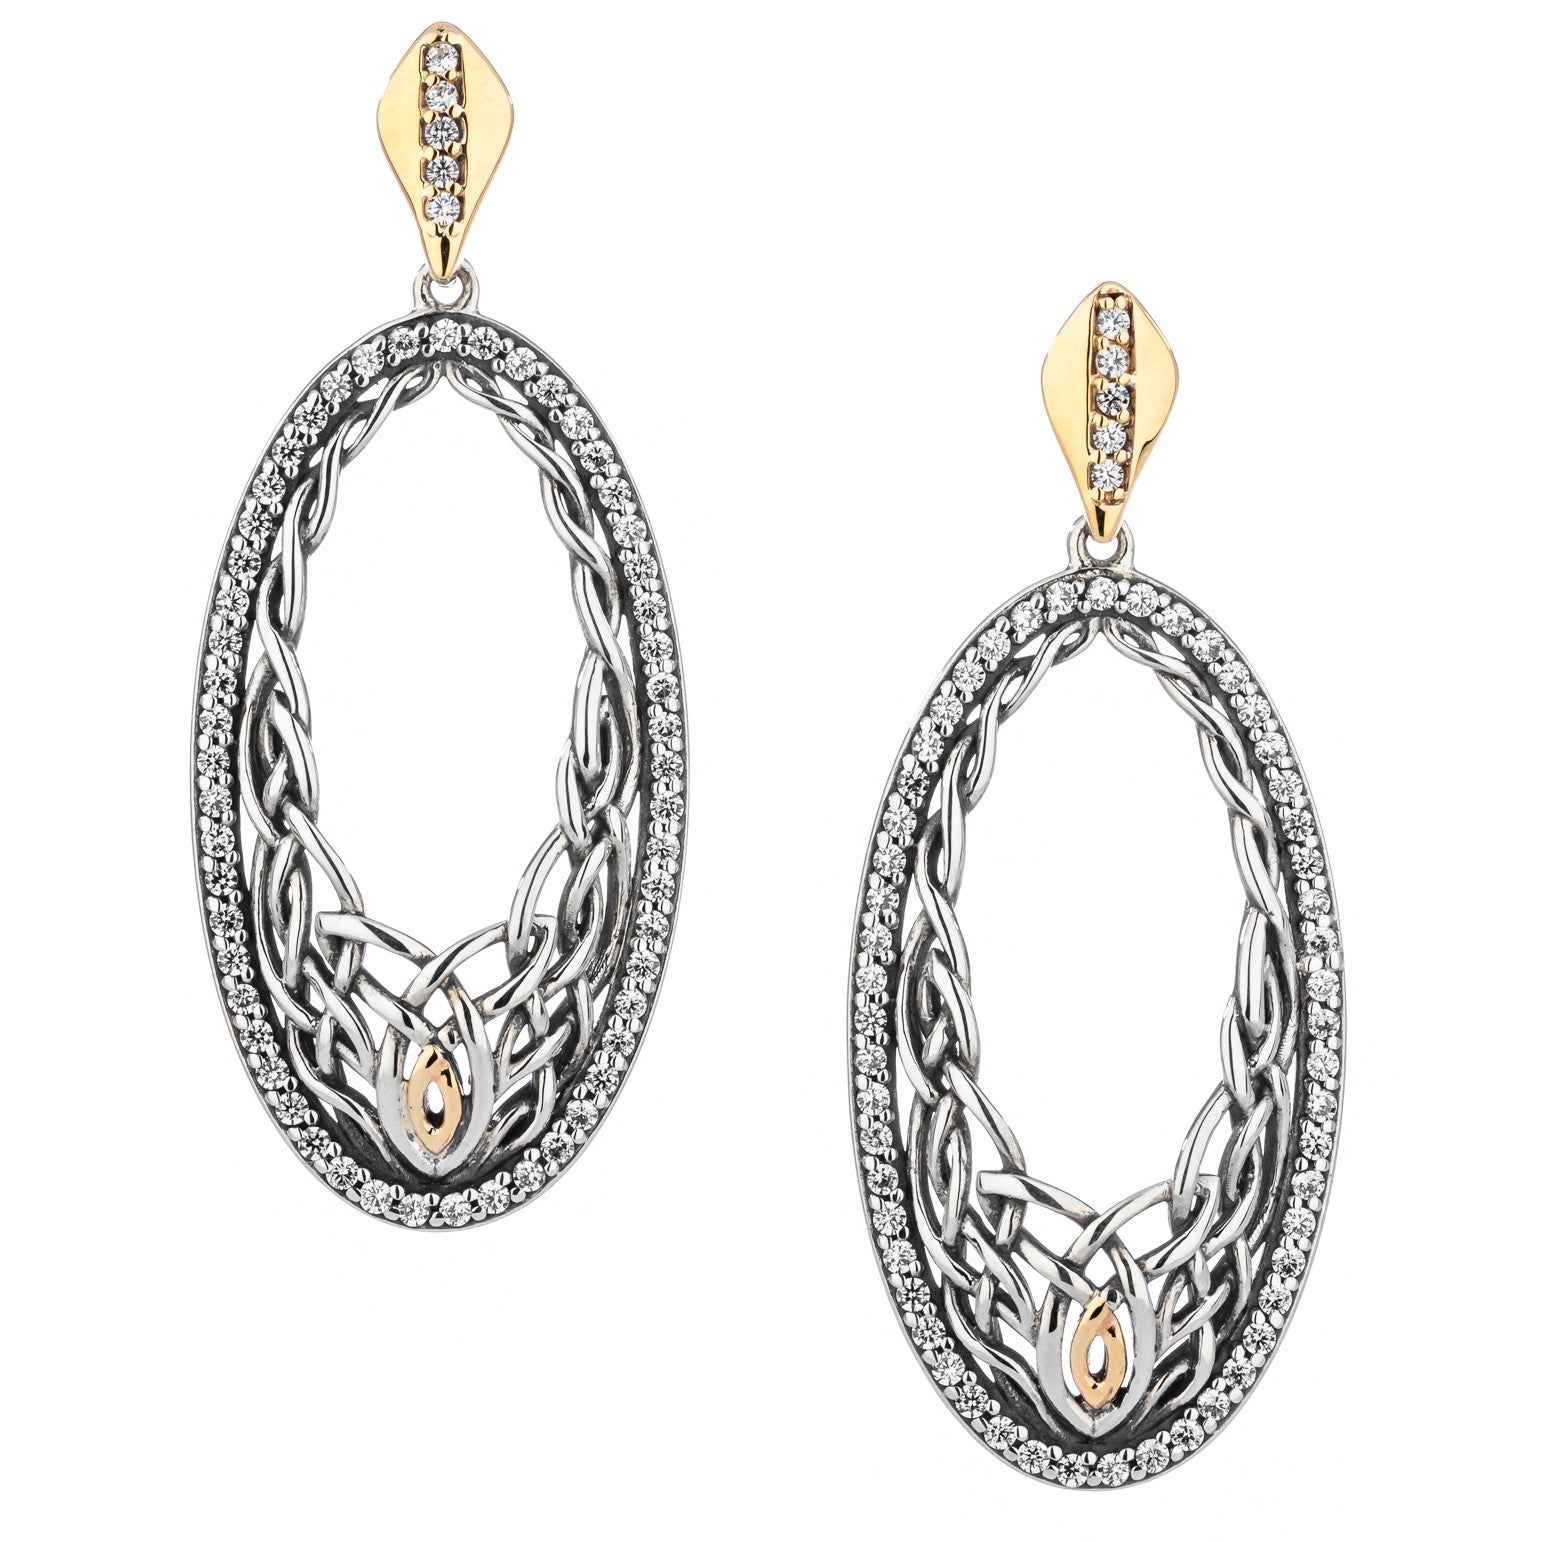 Woven Oval Gateway Earrings